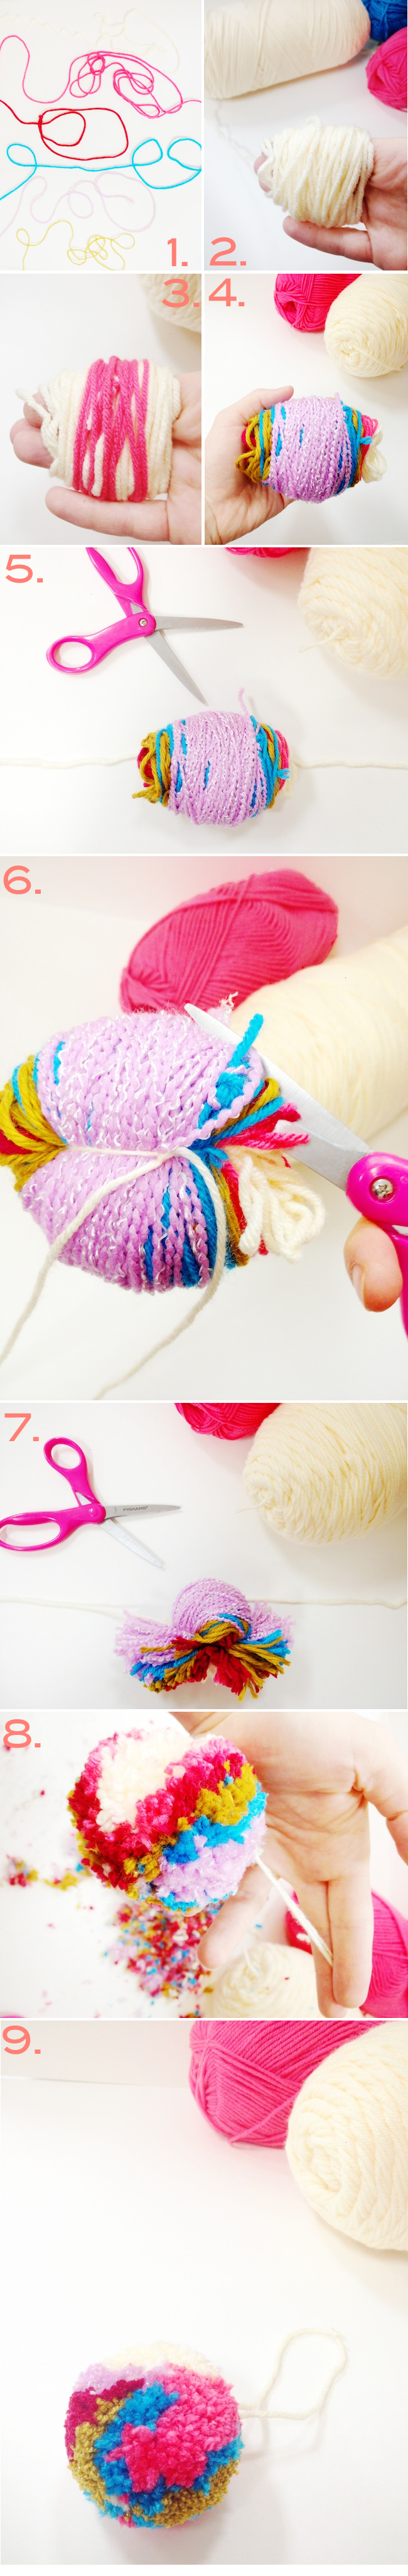 A-Lovely-Lark-DIY-Colorful-Yarn-Pom-Pom-Ornament